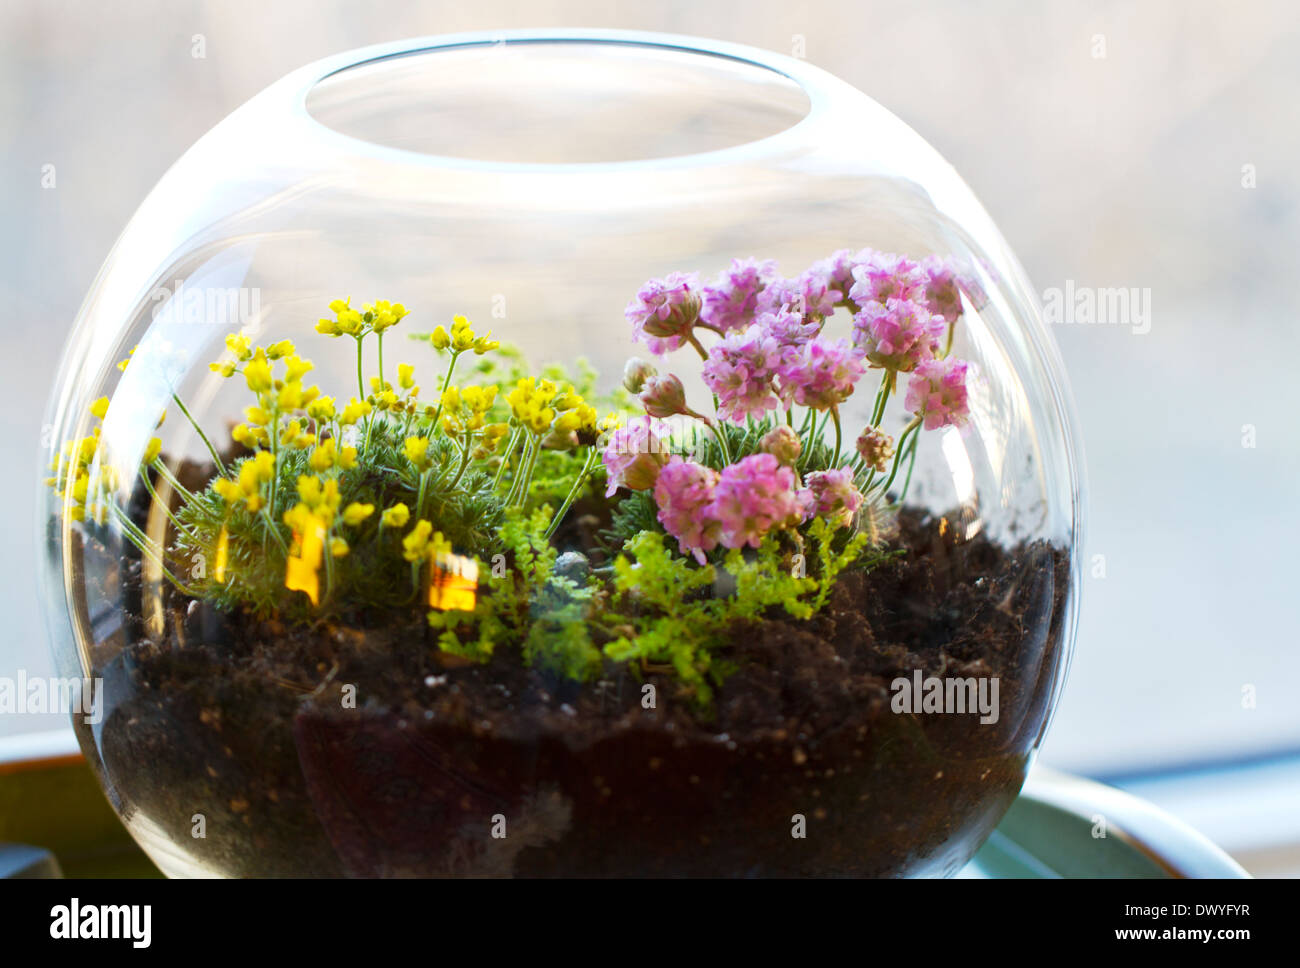 ein kleines glas terrarium mit pflanzen im inneren stockfoto bild 67602747 alamy. Black Bedroom Furniture Sets. Home Design Ideas